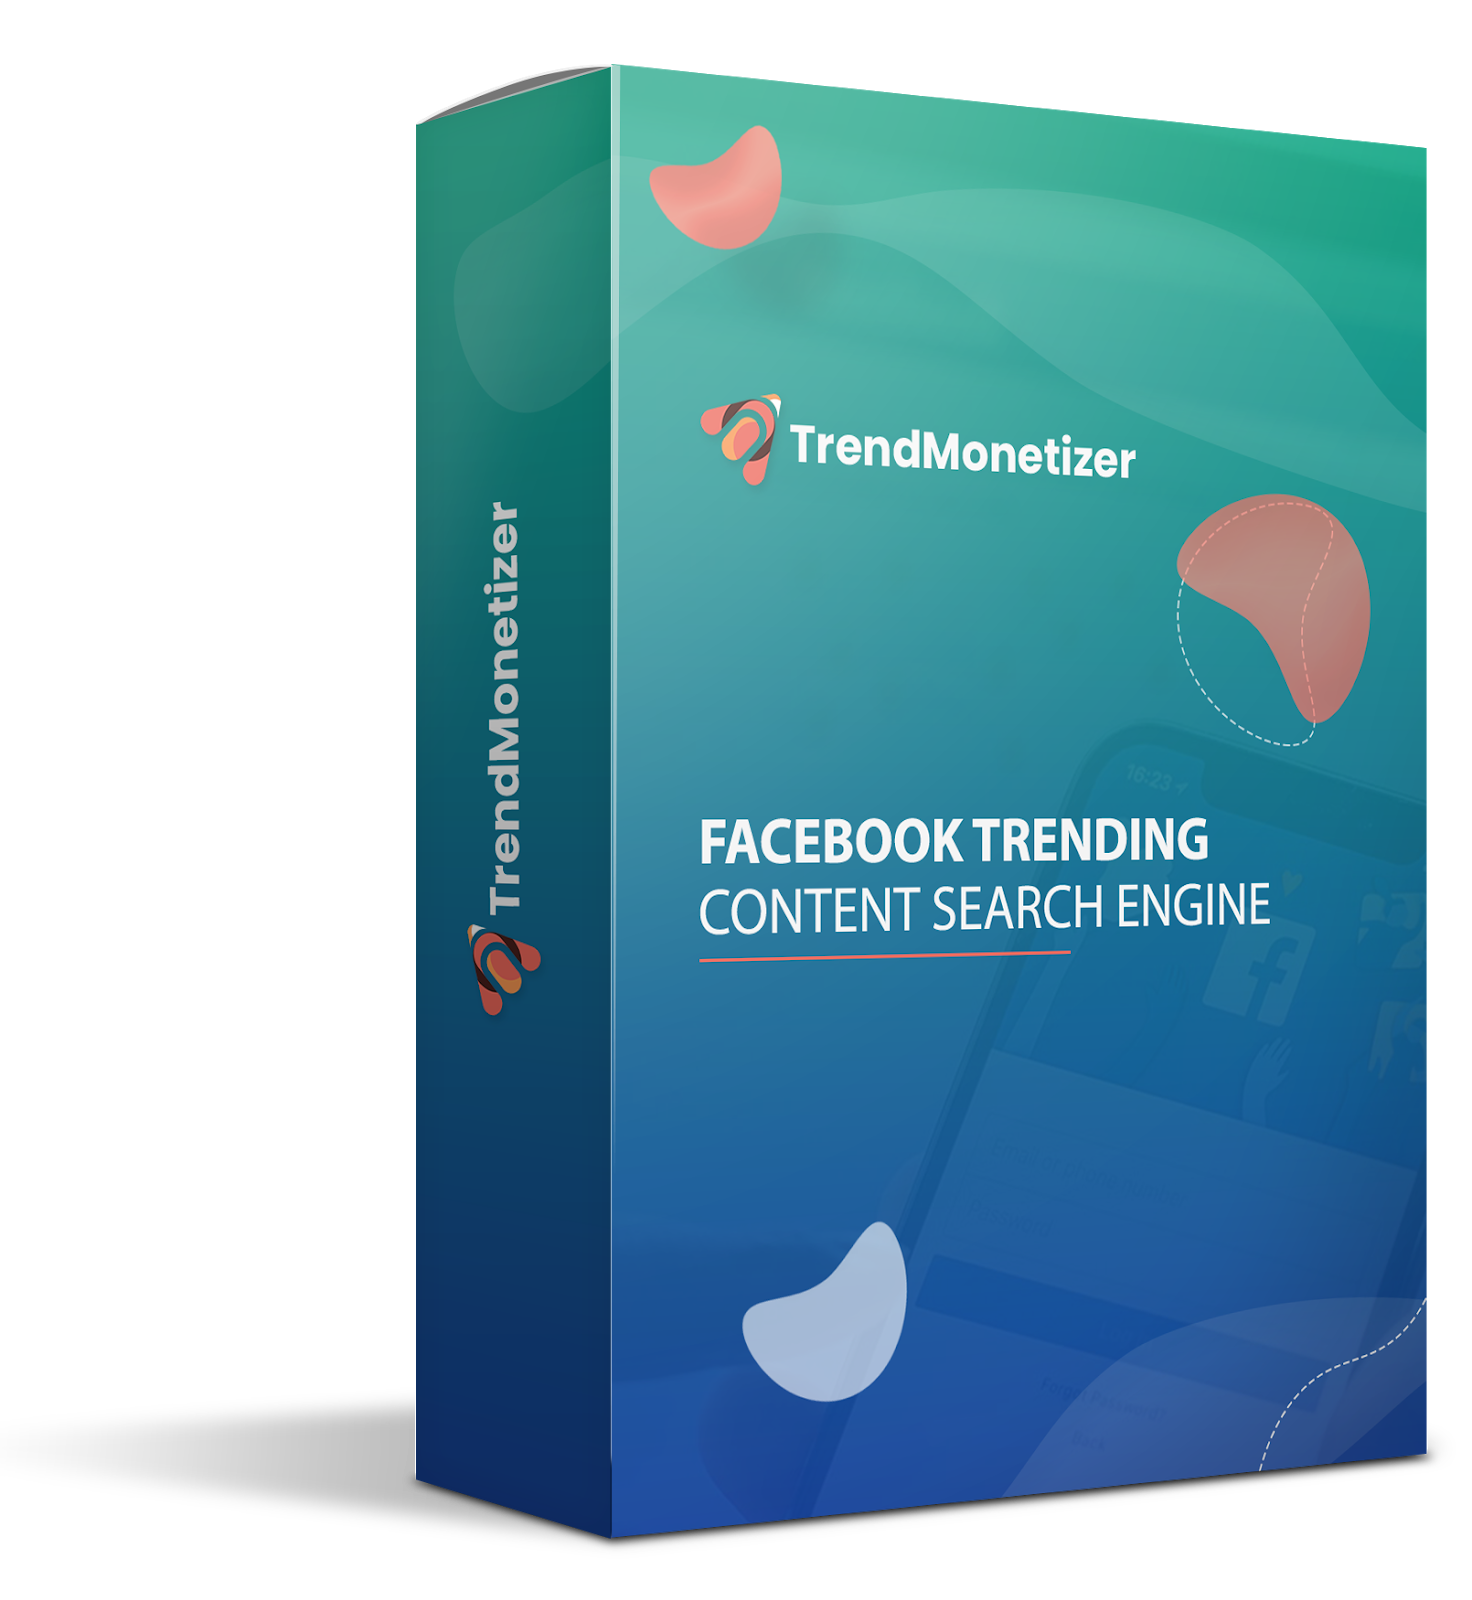 Facebook Trending Content Search Engine